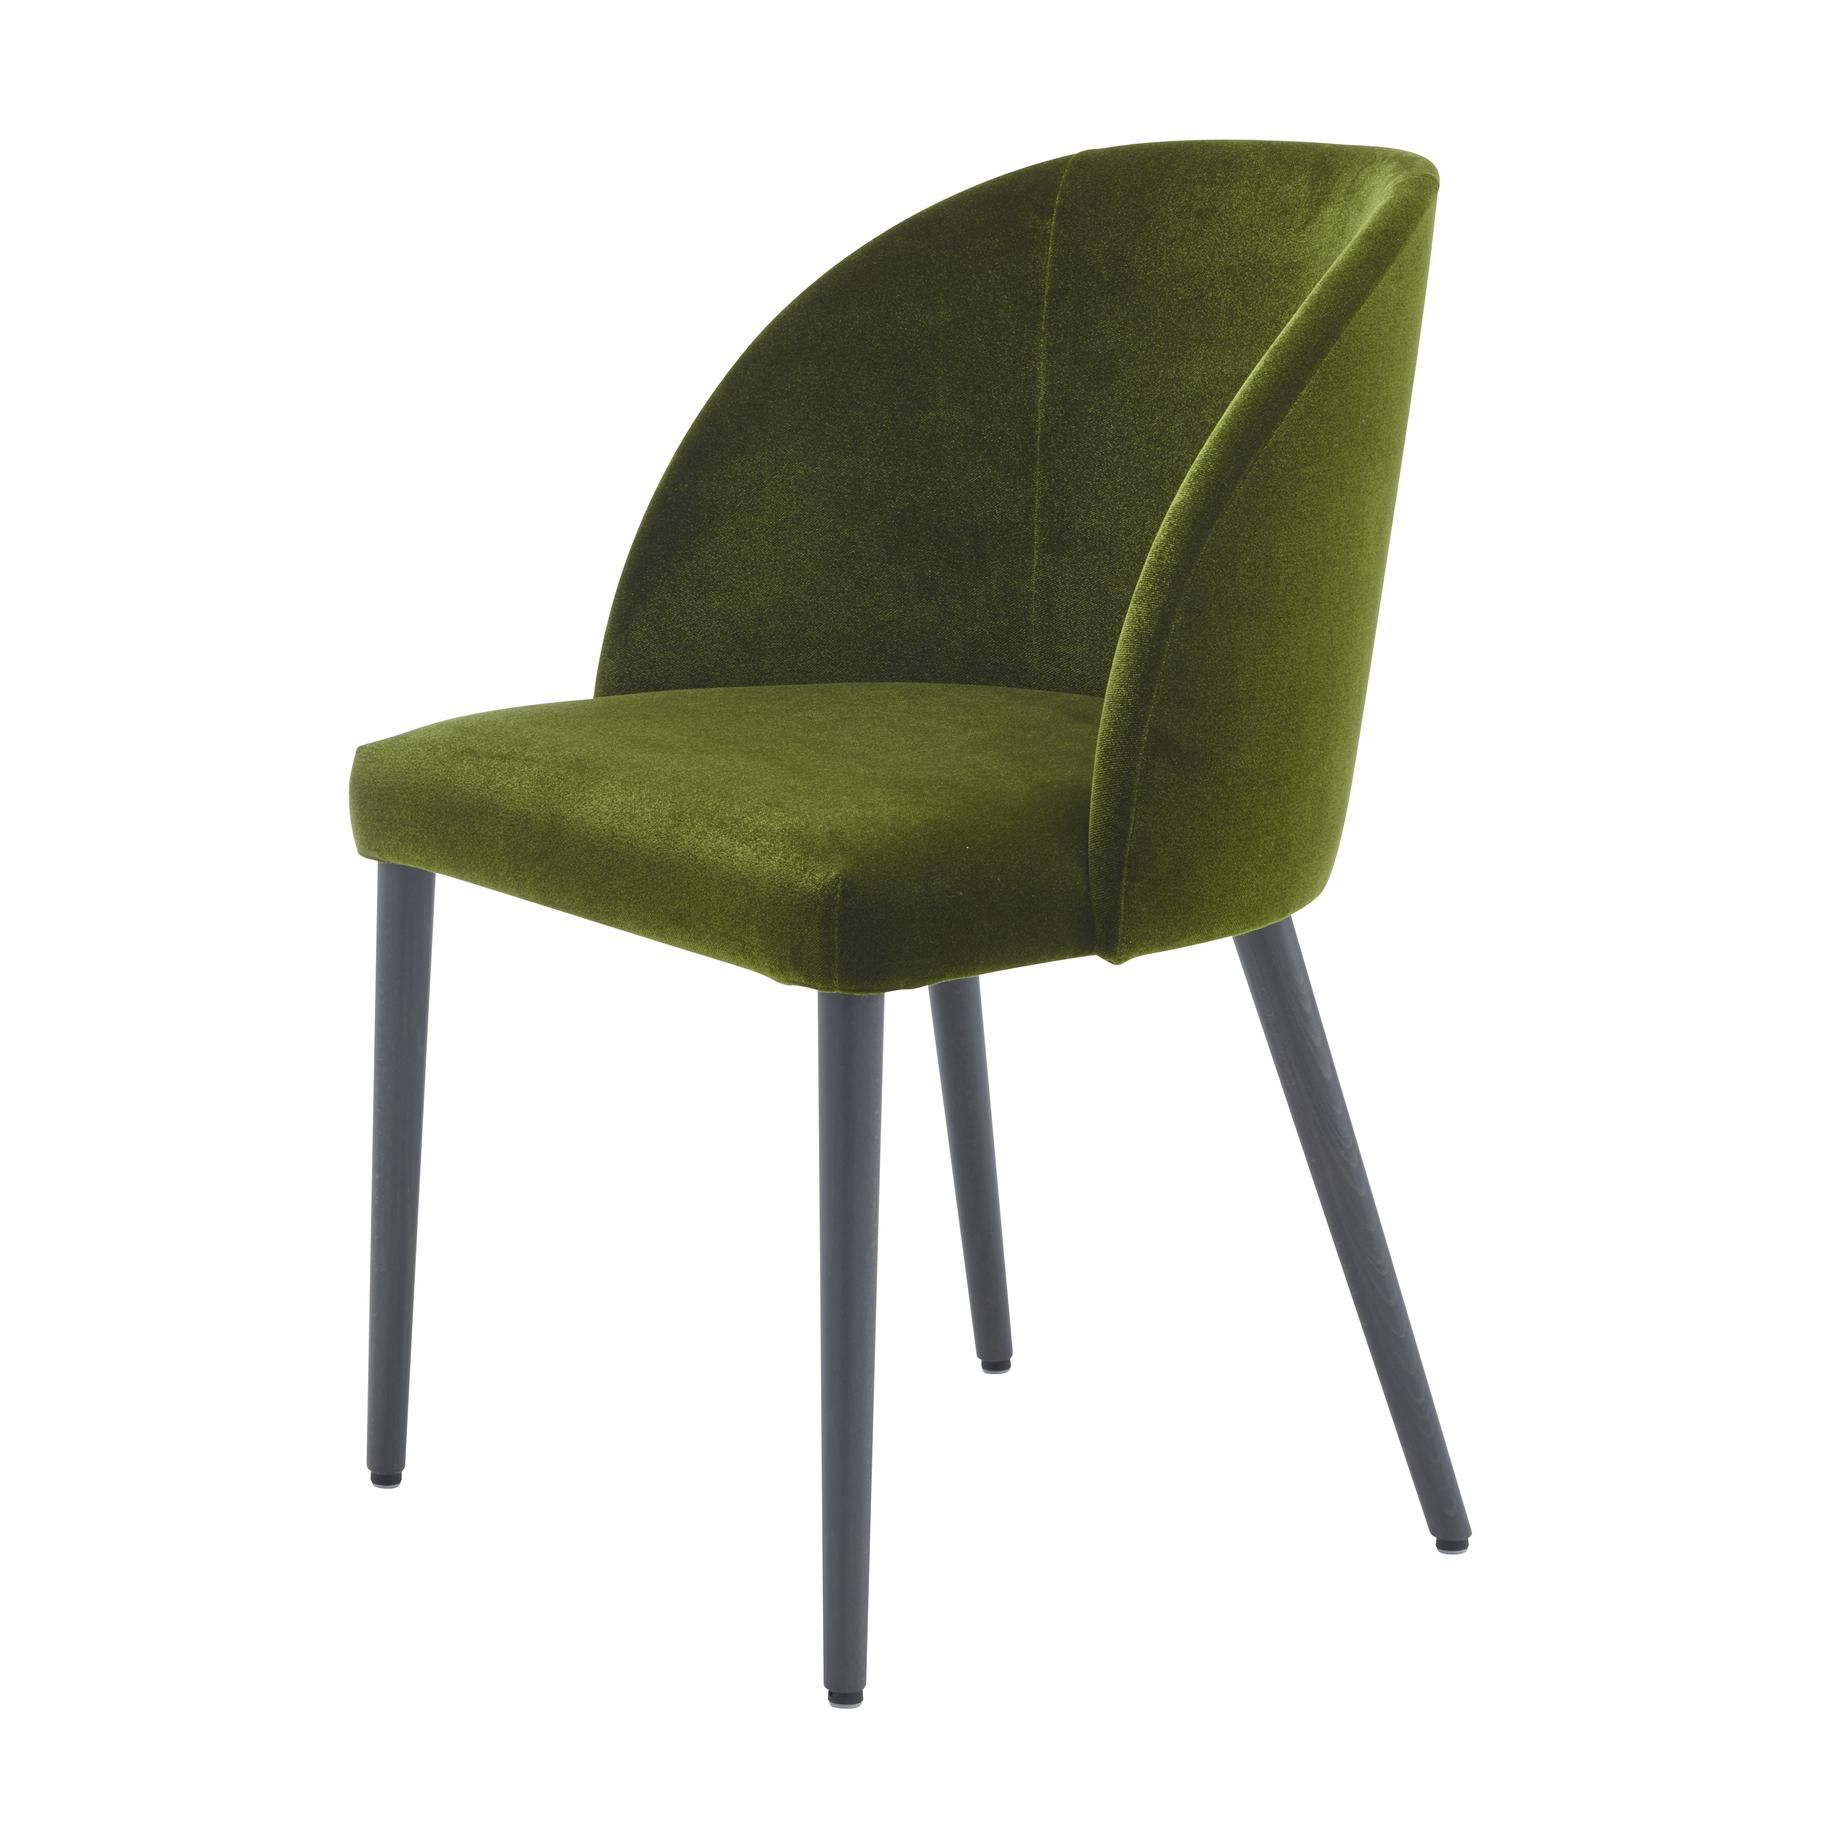 Island dining chair by ligne roset modern dining chairs los angeles - Cimbo Cimba Chairs Cimba Cimbo Recalls The Spirit Of The Armchairs Bridges Of The The Round Enveloping Back And Wide Welcoming Seat Prov